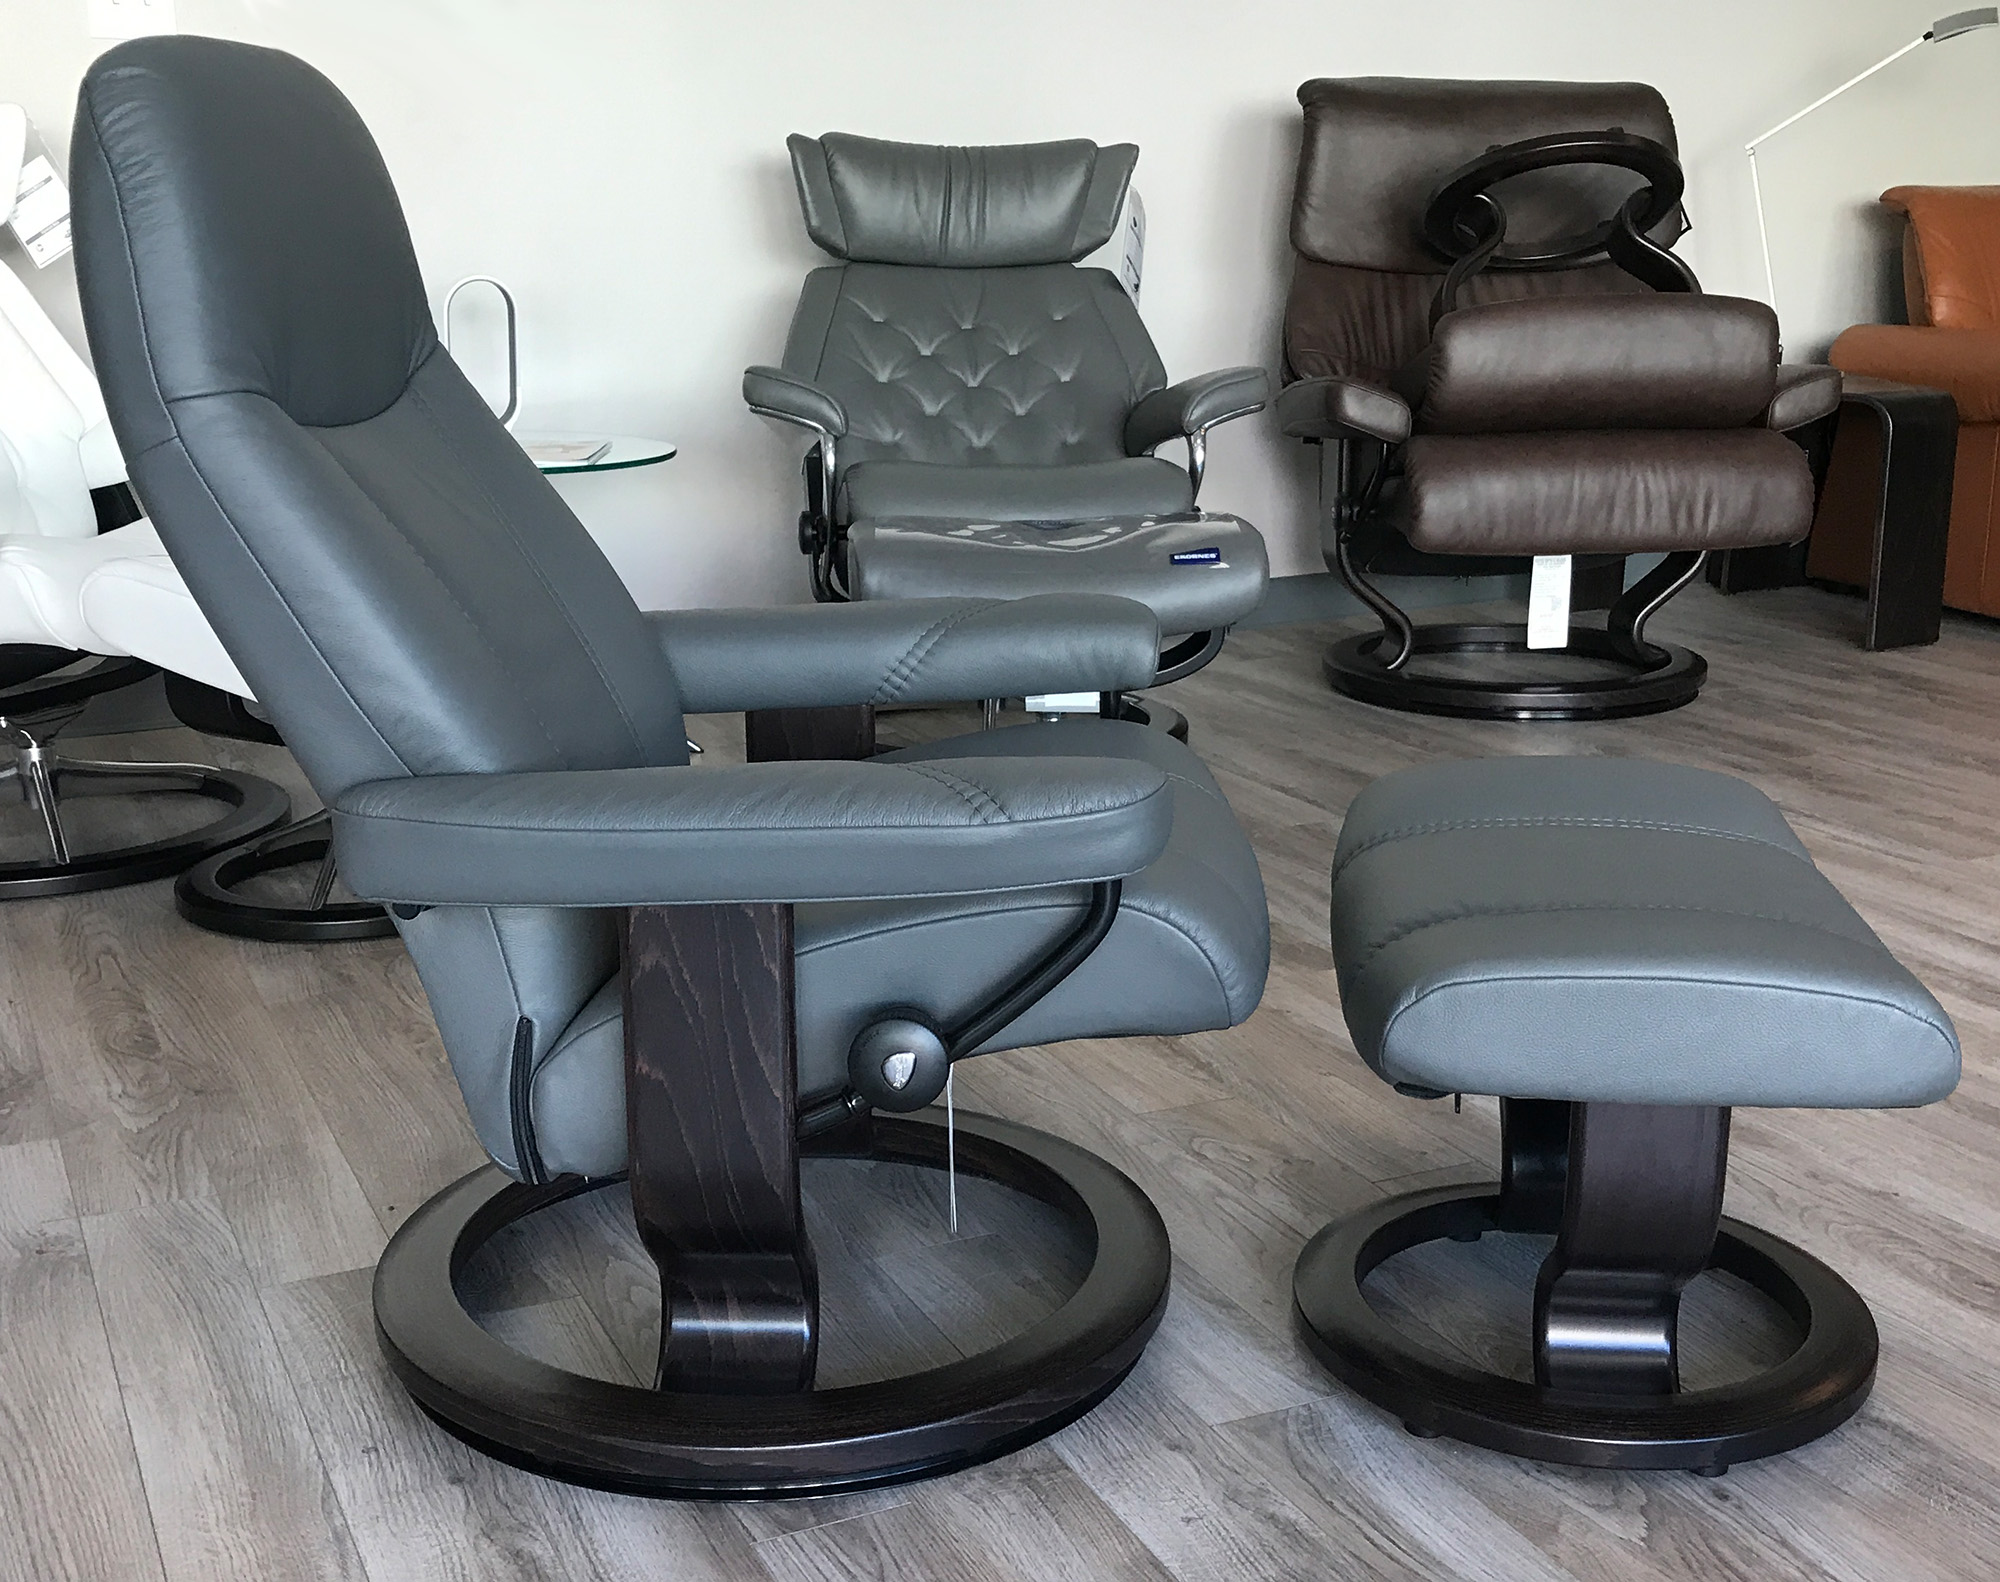 Stressless Consul Recliner Chair And Ottoman Batick Grey